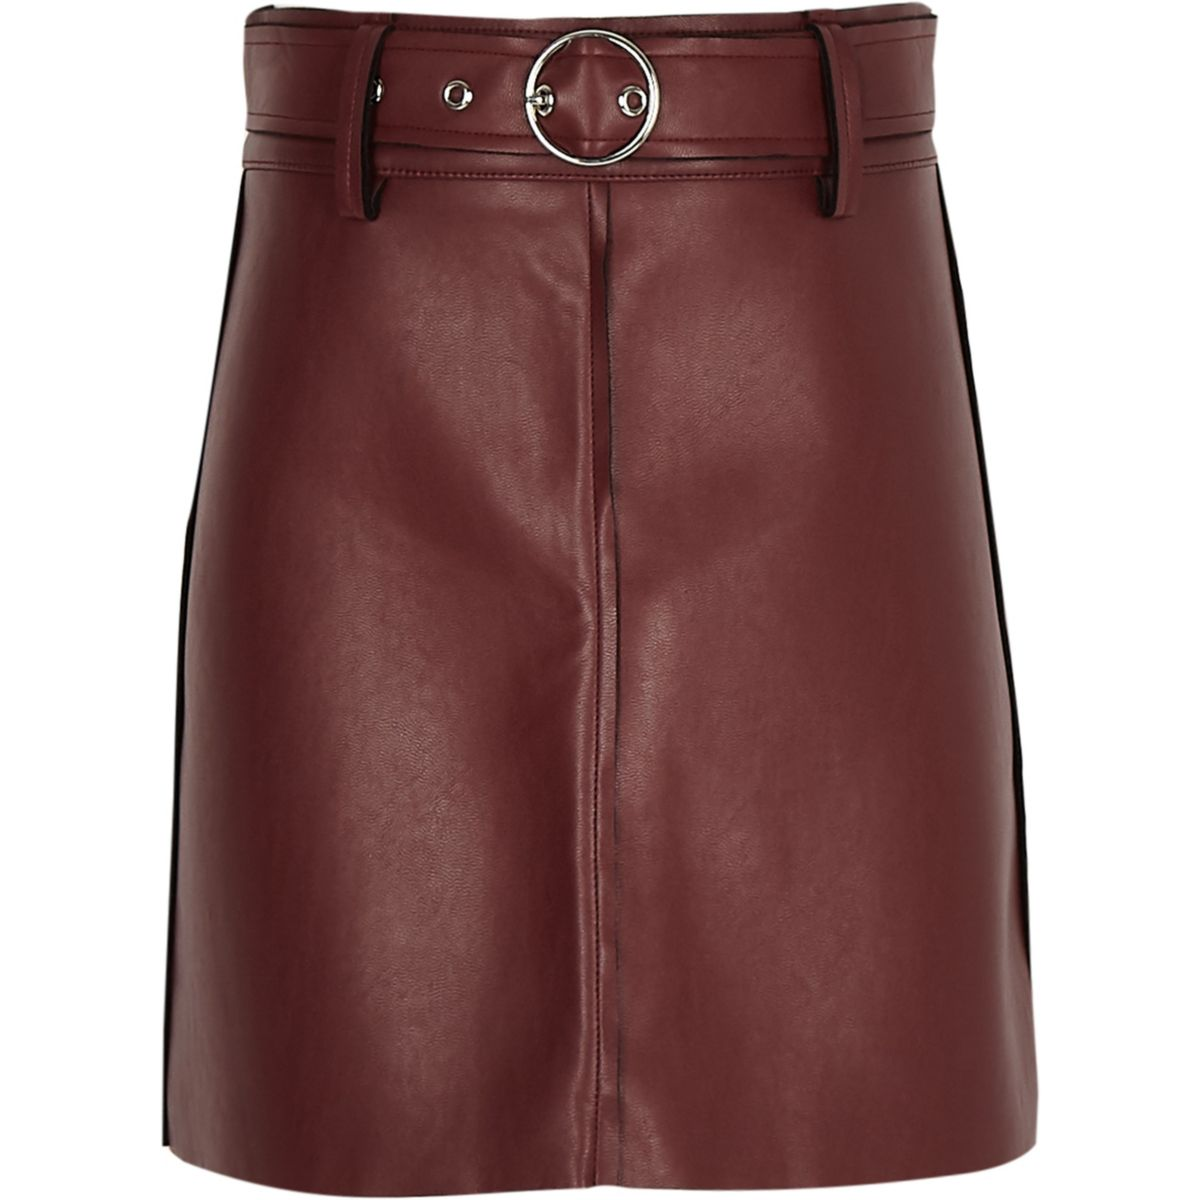 various design a few days away luxury aesthetic Girls dark red faux leather A line skirt